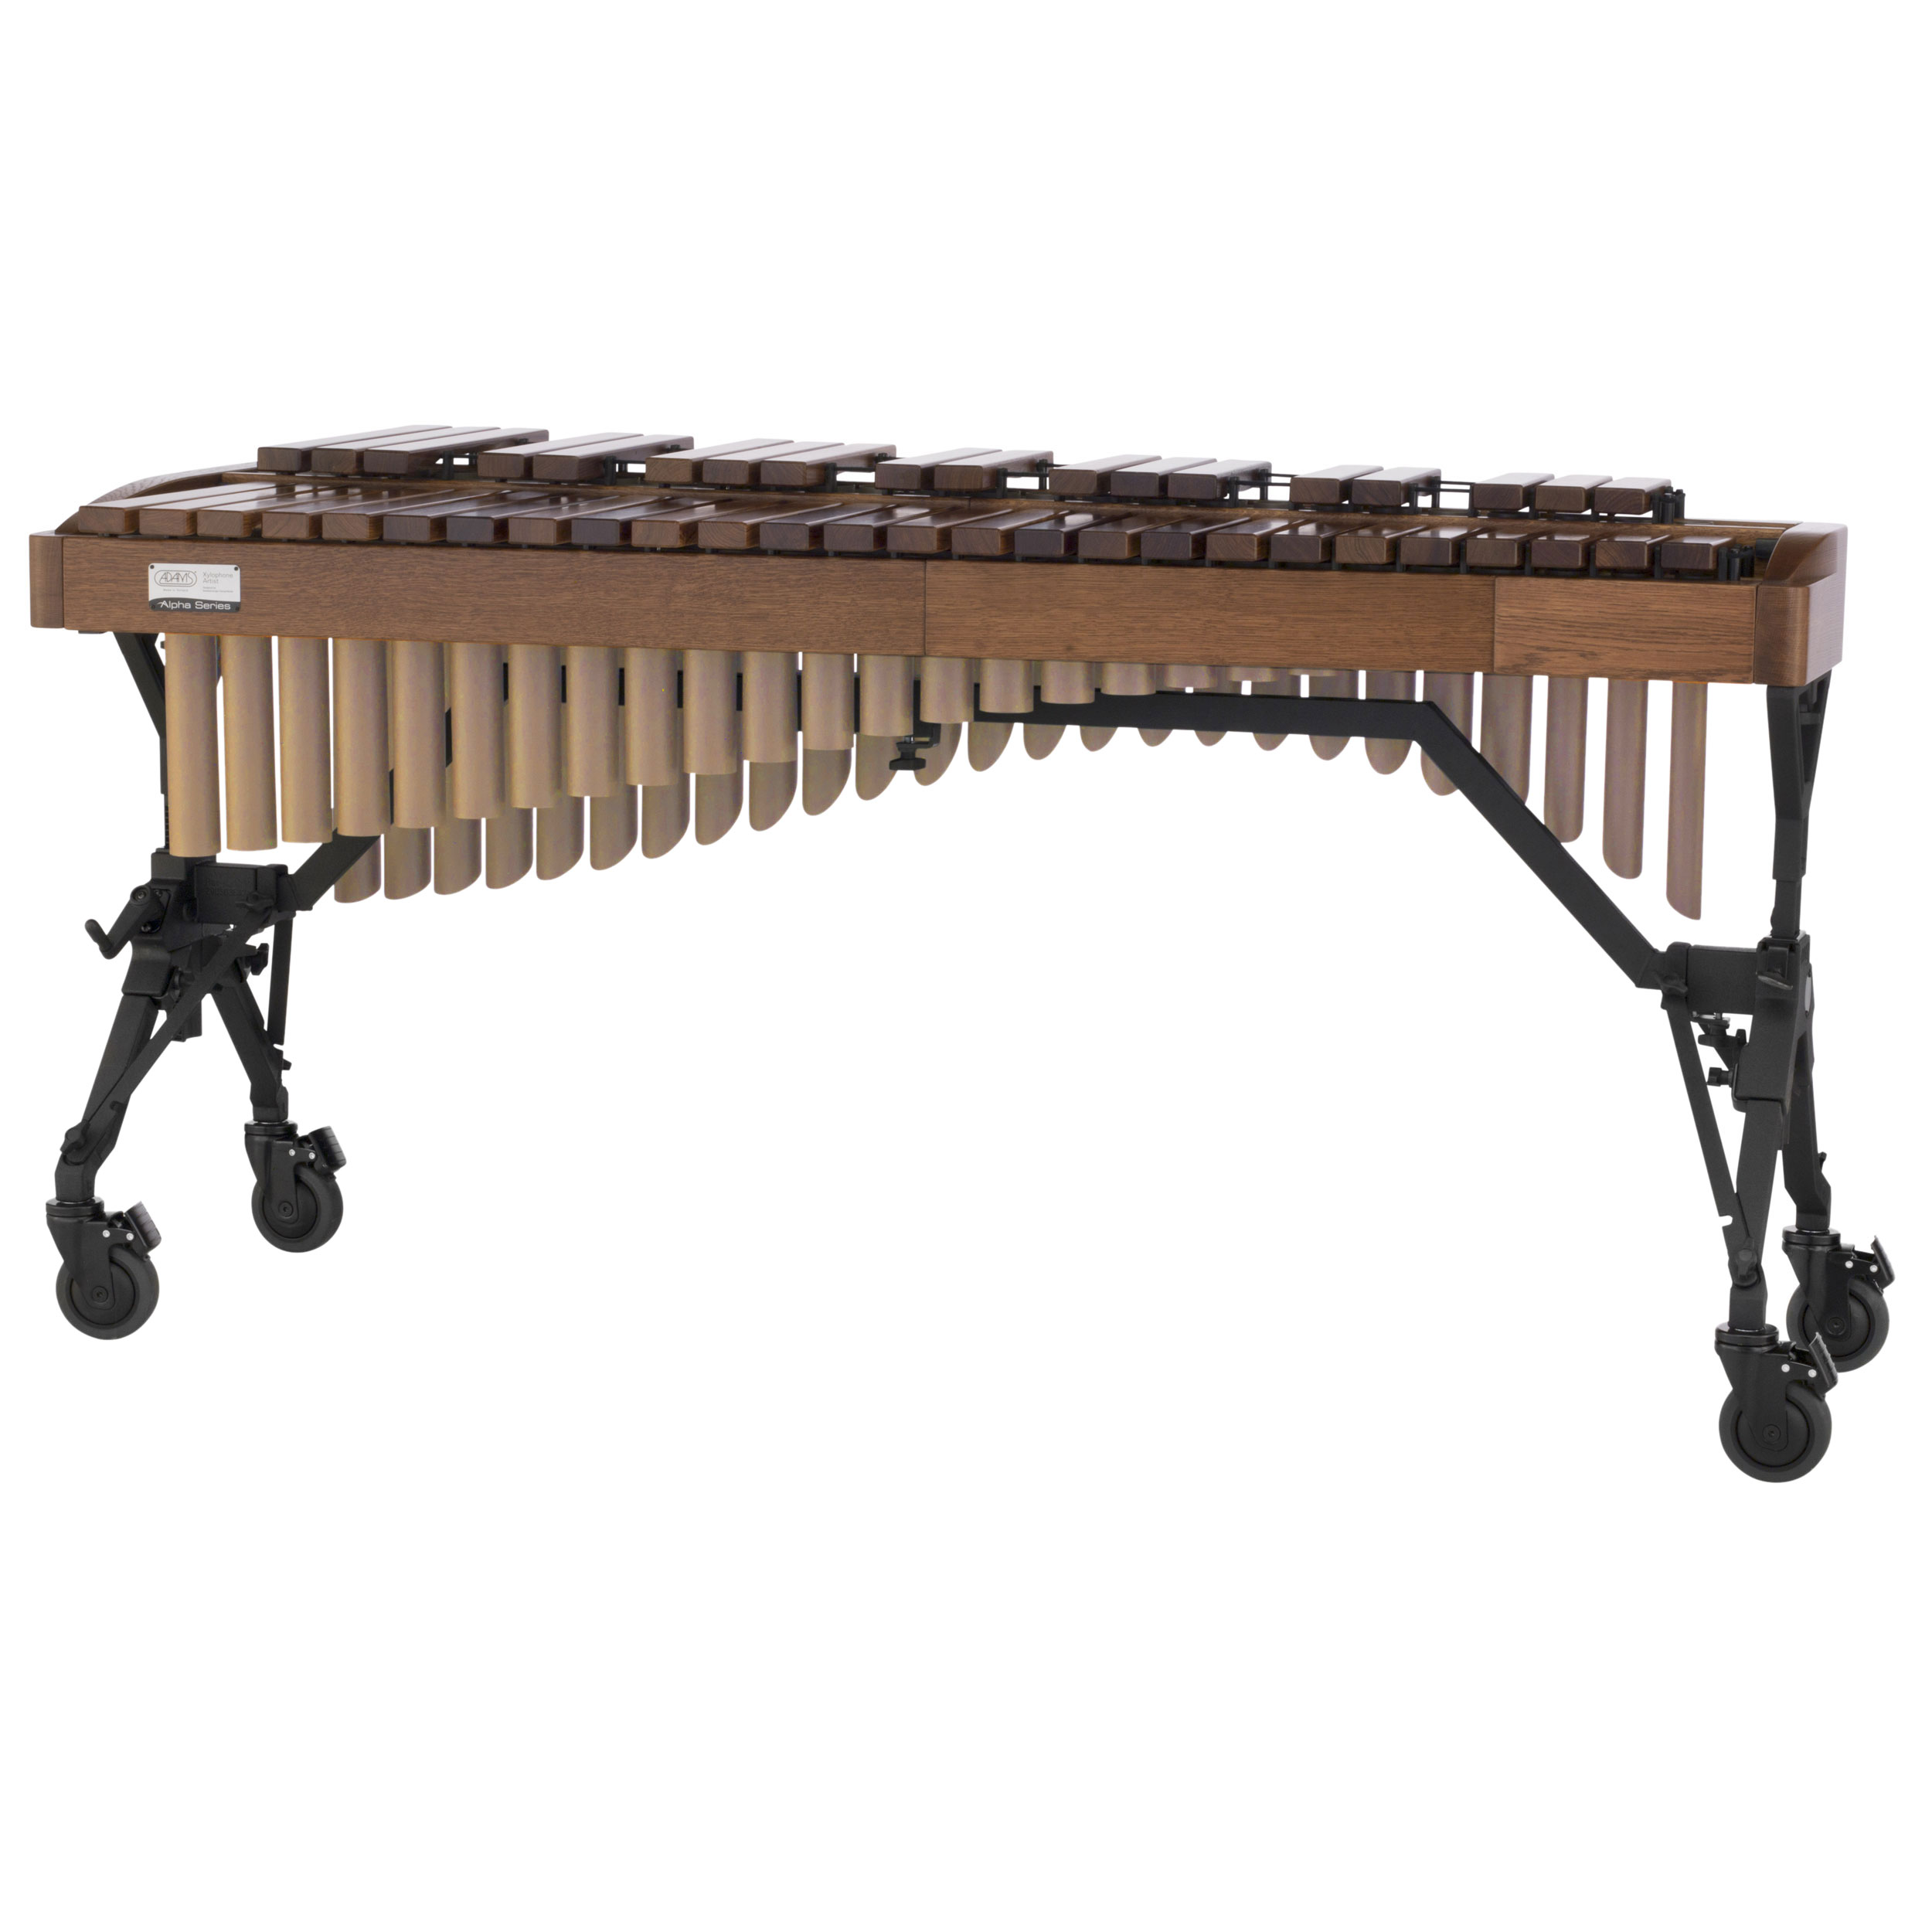 Adams 3.5 Octave Alpha Rosewood Xylophone with Walnut Oak Rails & Satin Gold Resonators